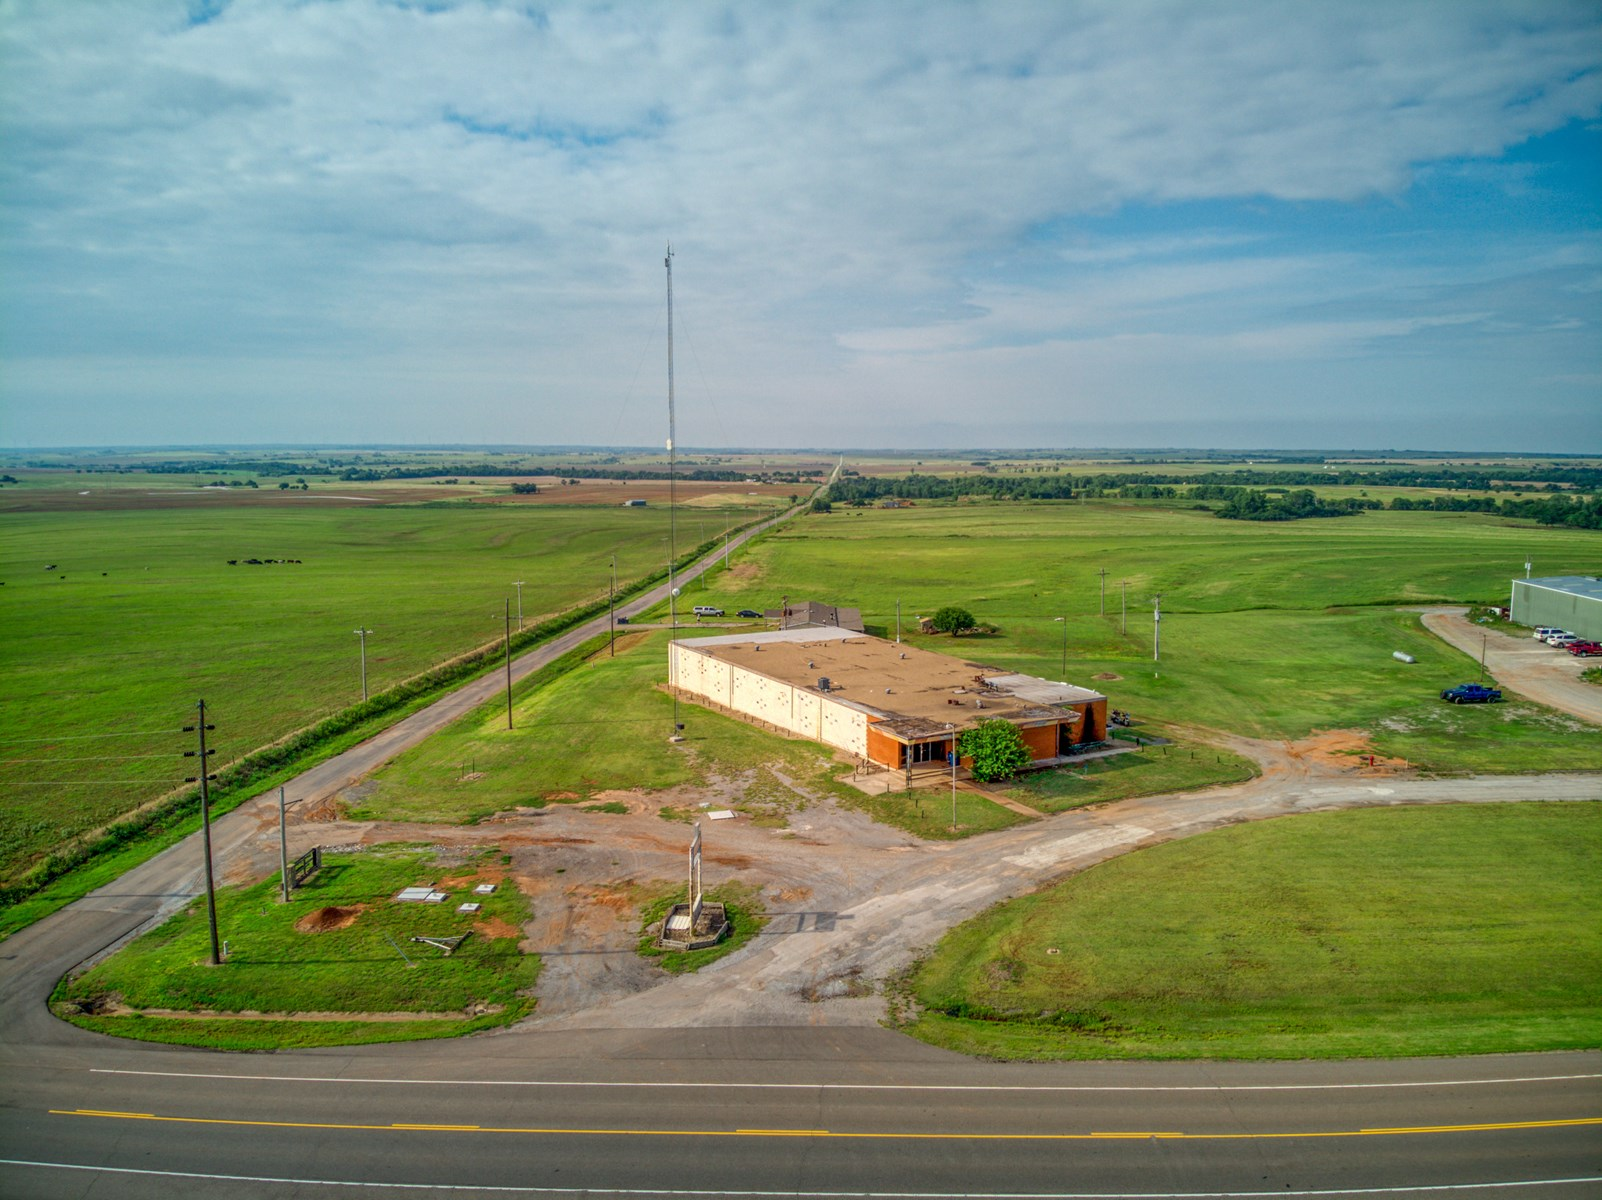 COMMERCIAL BUILDING FOR SALE IN CORDELL, OKLAHOMA GROW ACRES